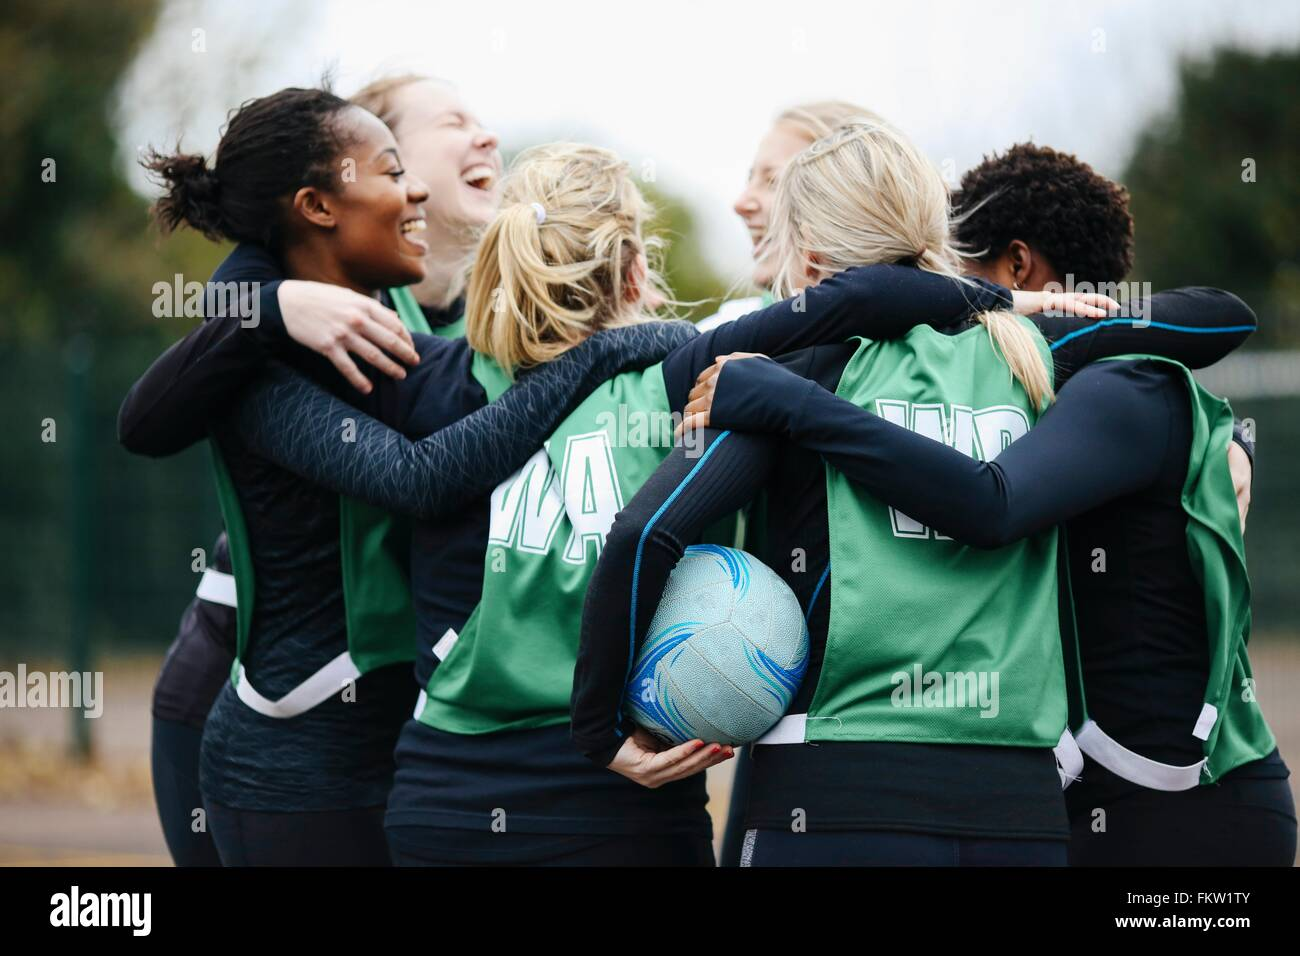 Female netball team celebrating in huddle on netball court - Stock Image